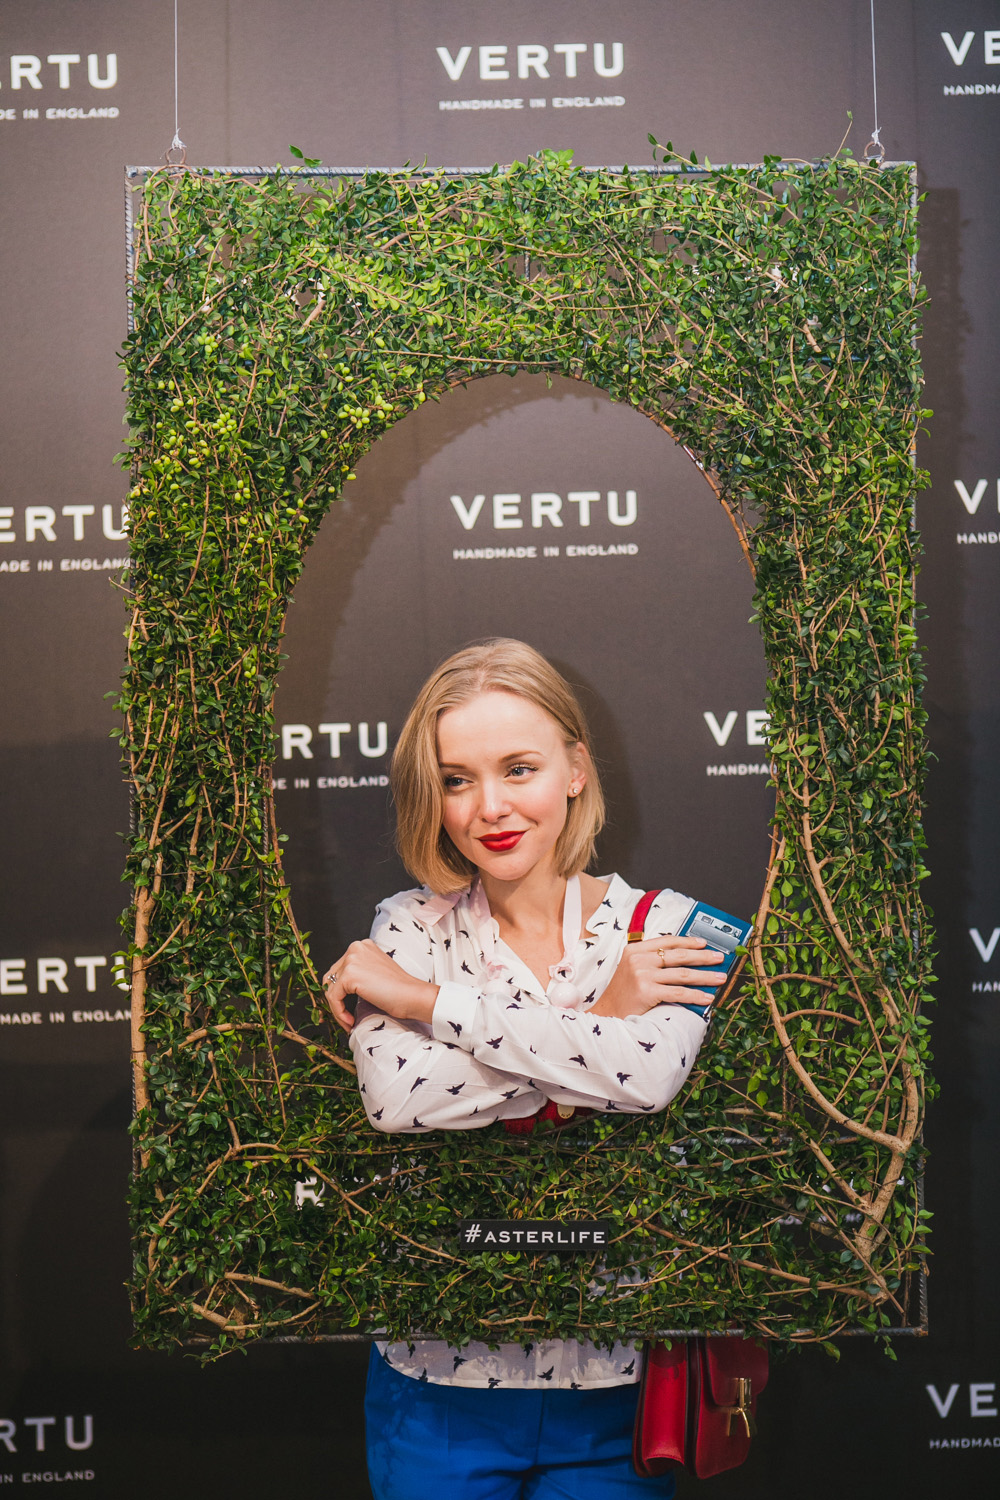 darya kamalova fashion lifestyle blogger thecablook com on veru asterlife aster event in milan italy wearing rafinad suit gucci heels celine classic box bag-8341